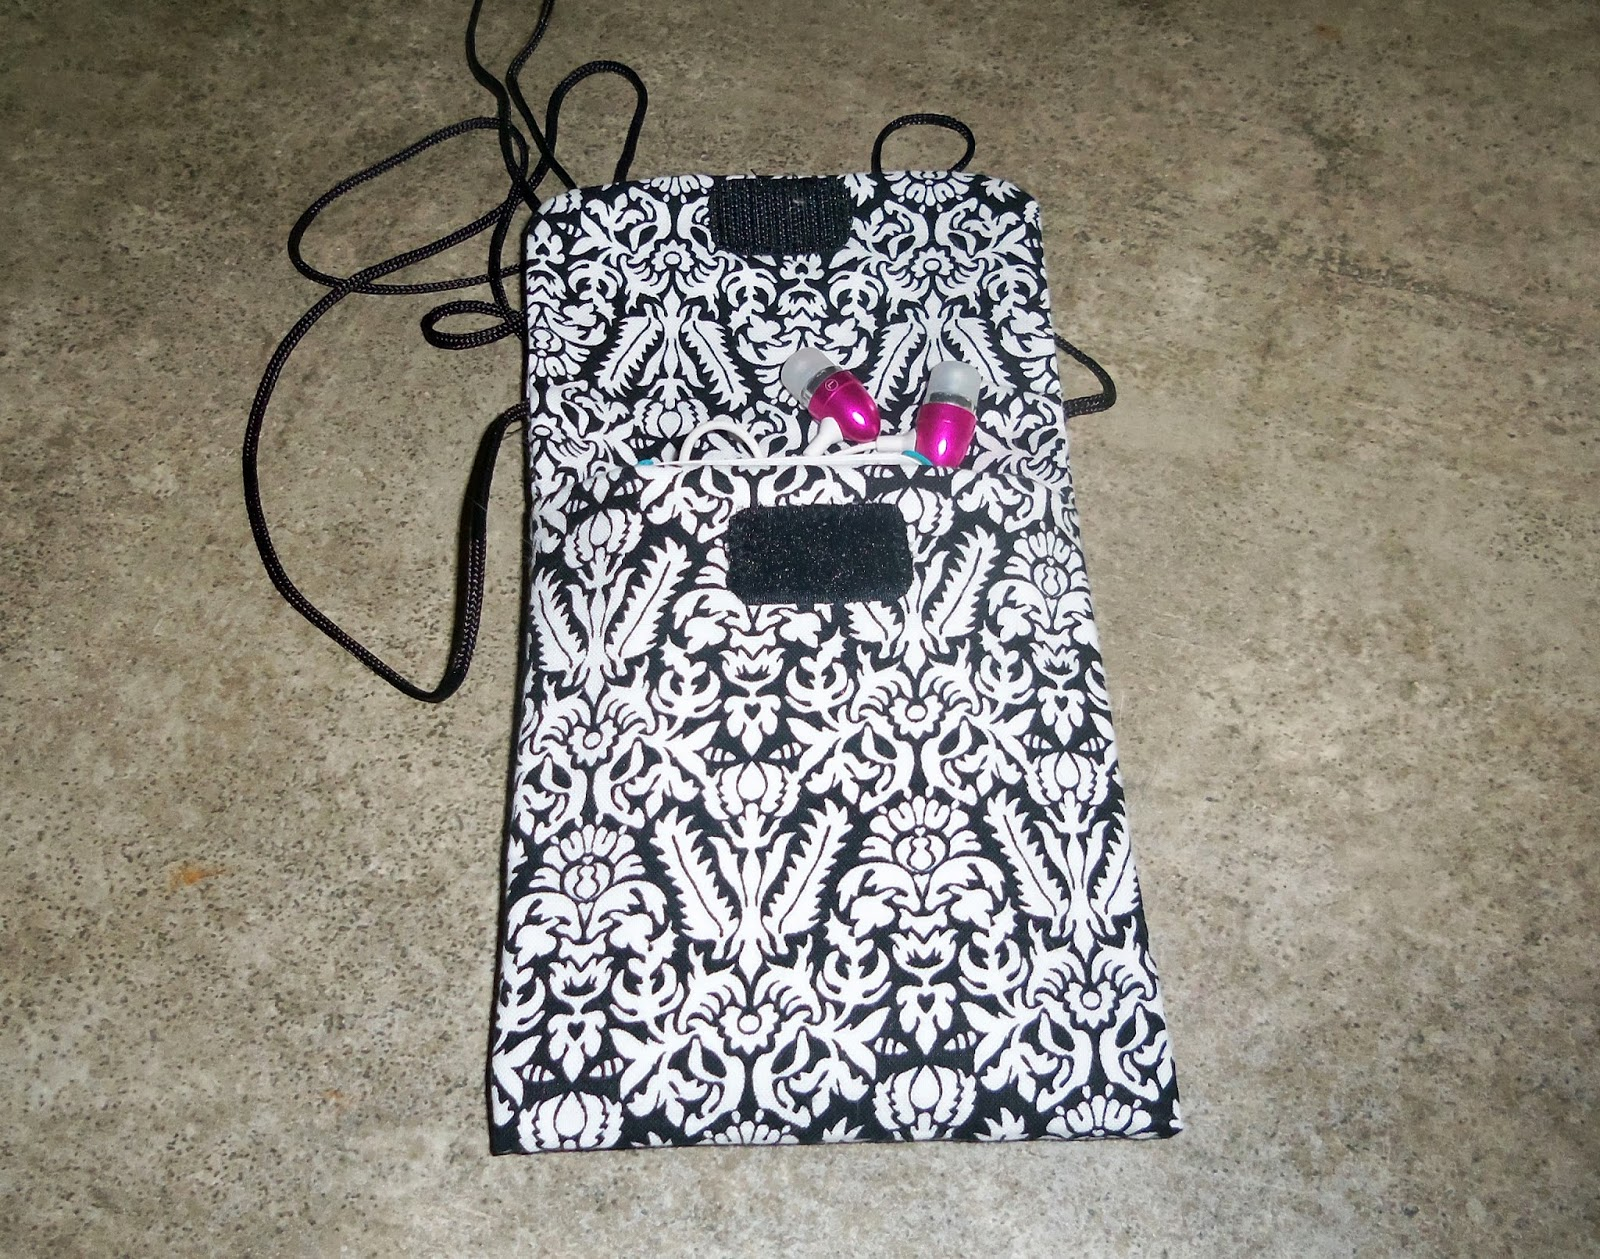 Quiltsmart Cell Phone Bag with Phone and Headphones